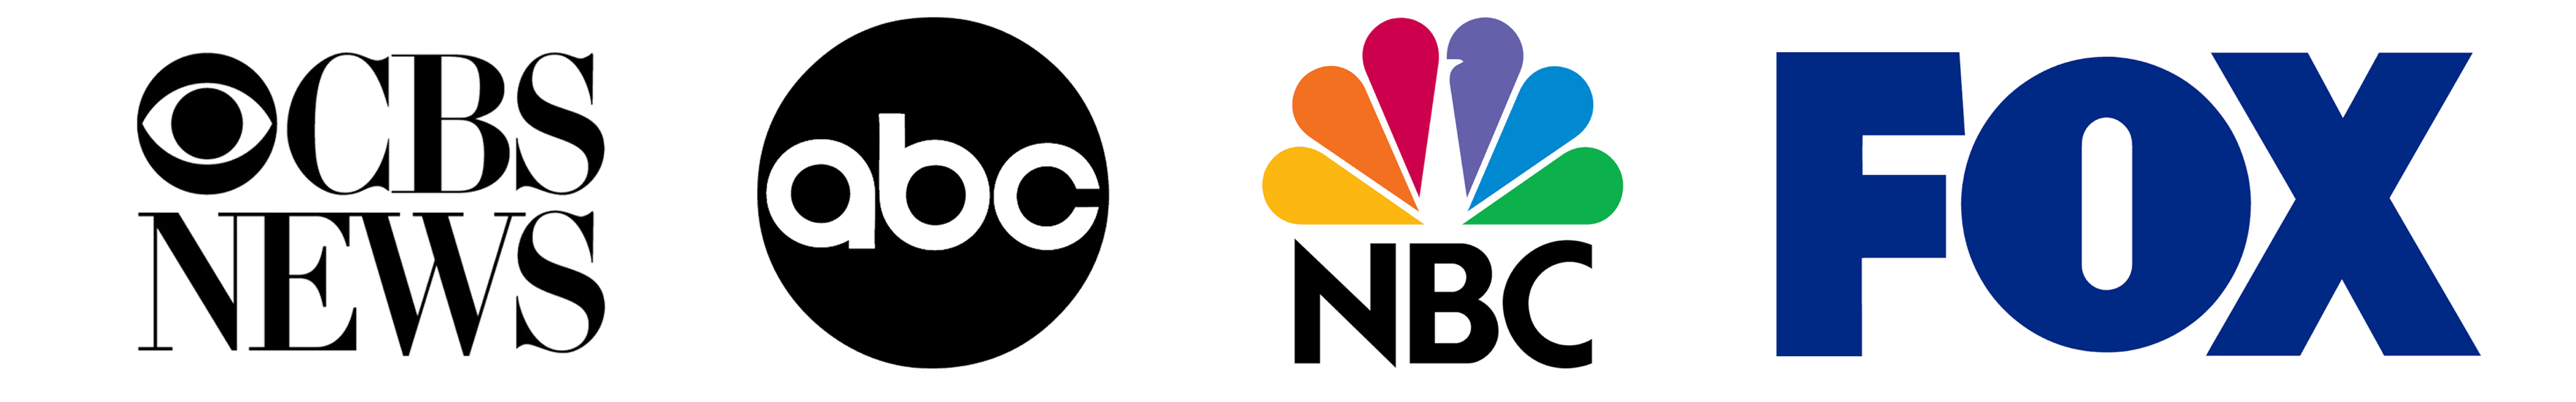 abc-cbs-nbc-fox-color